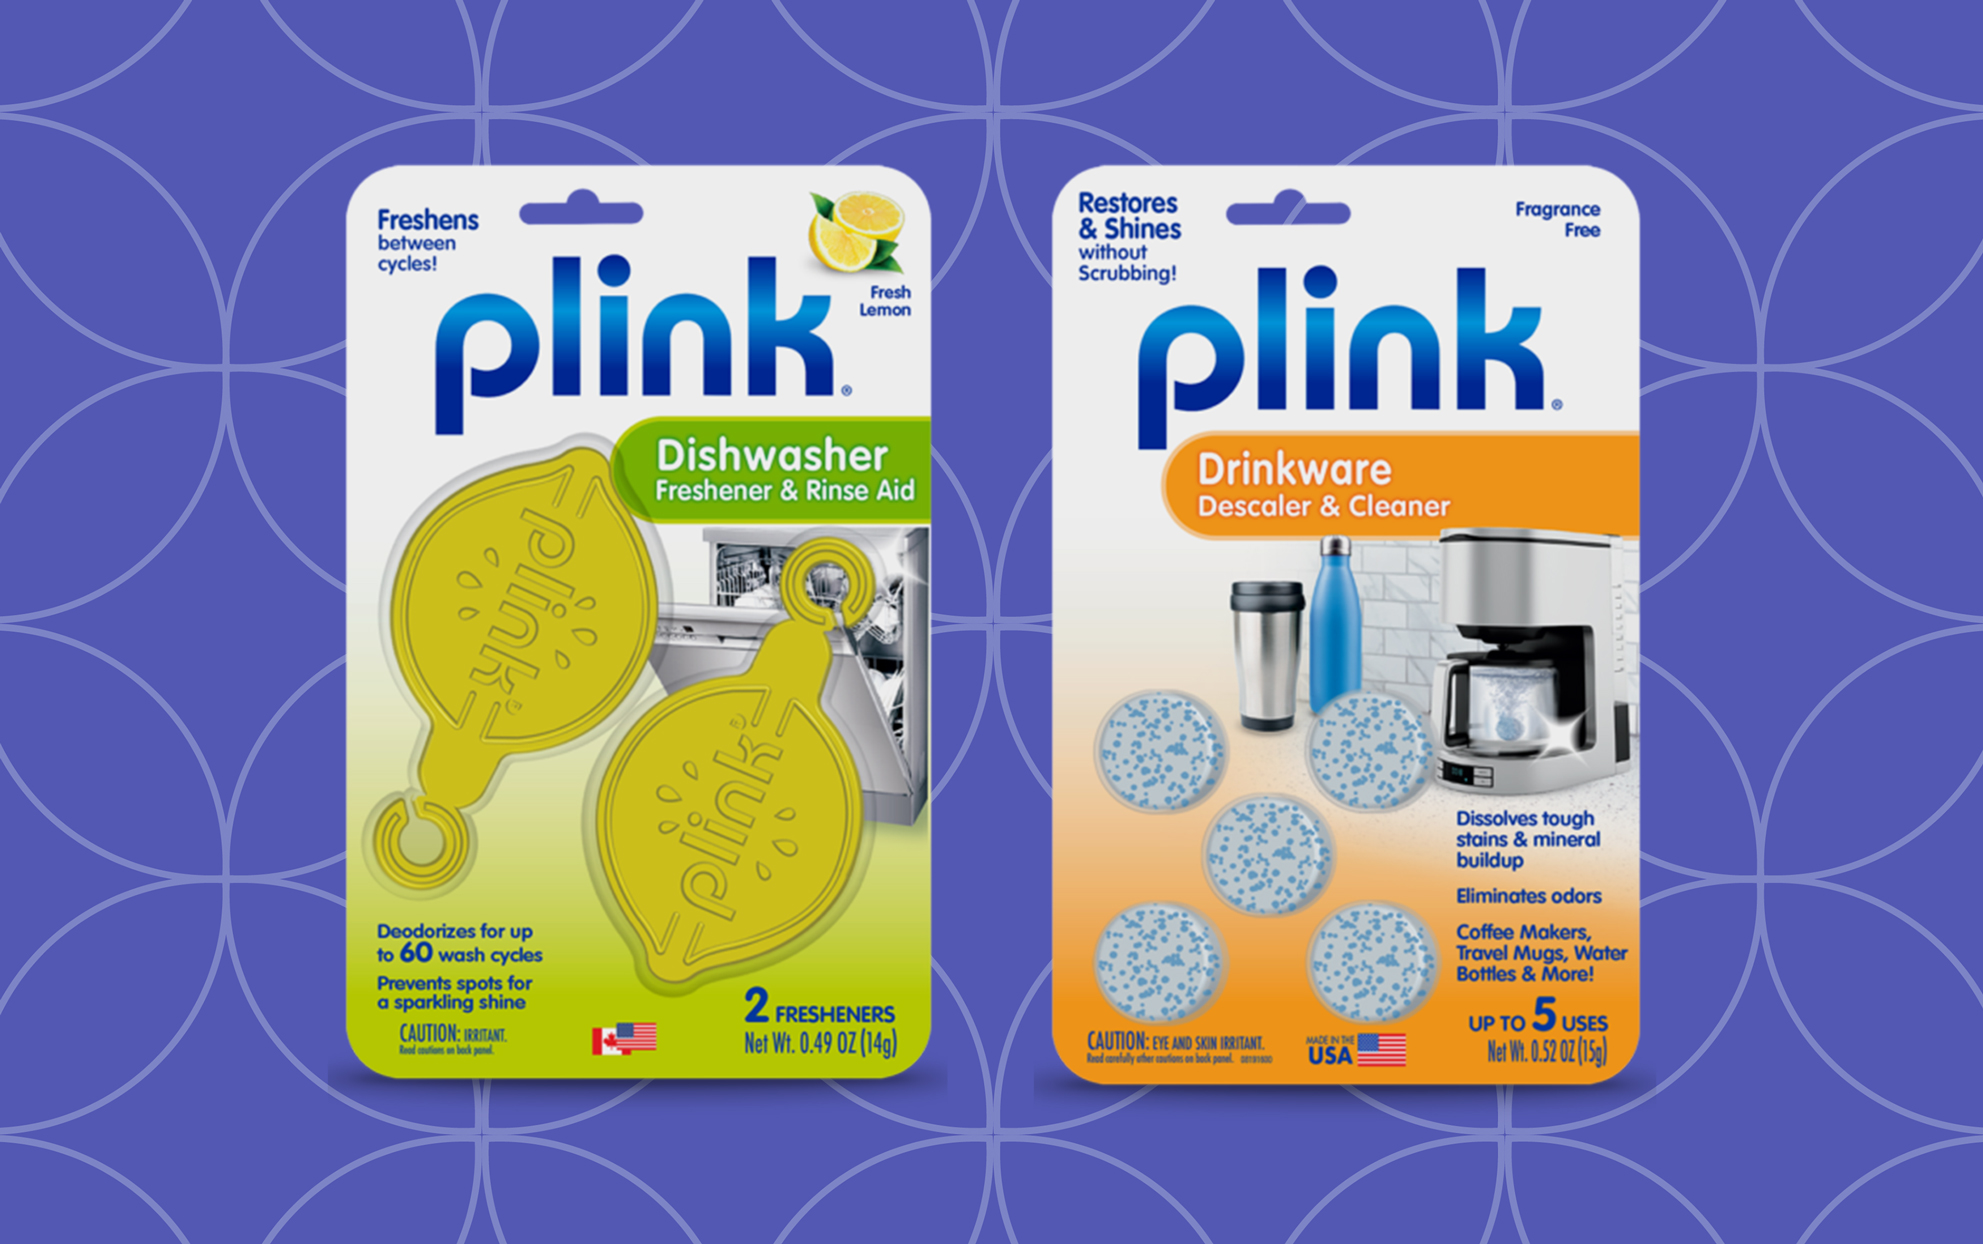 Plink dishwasher and drinkware cleaners on a blue background